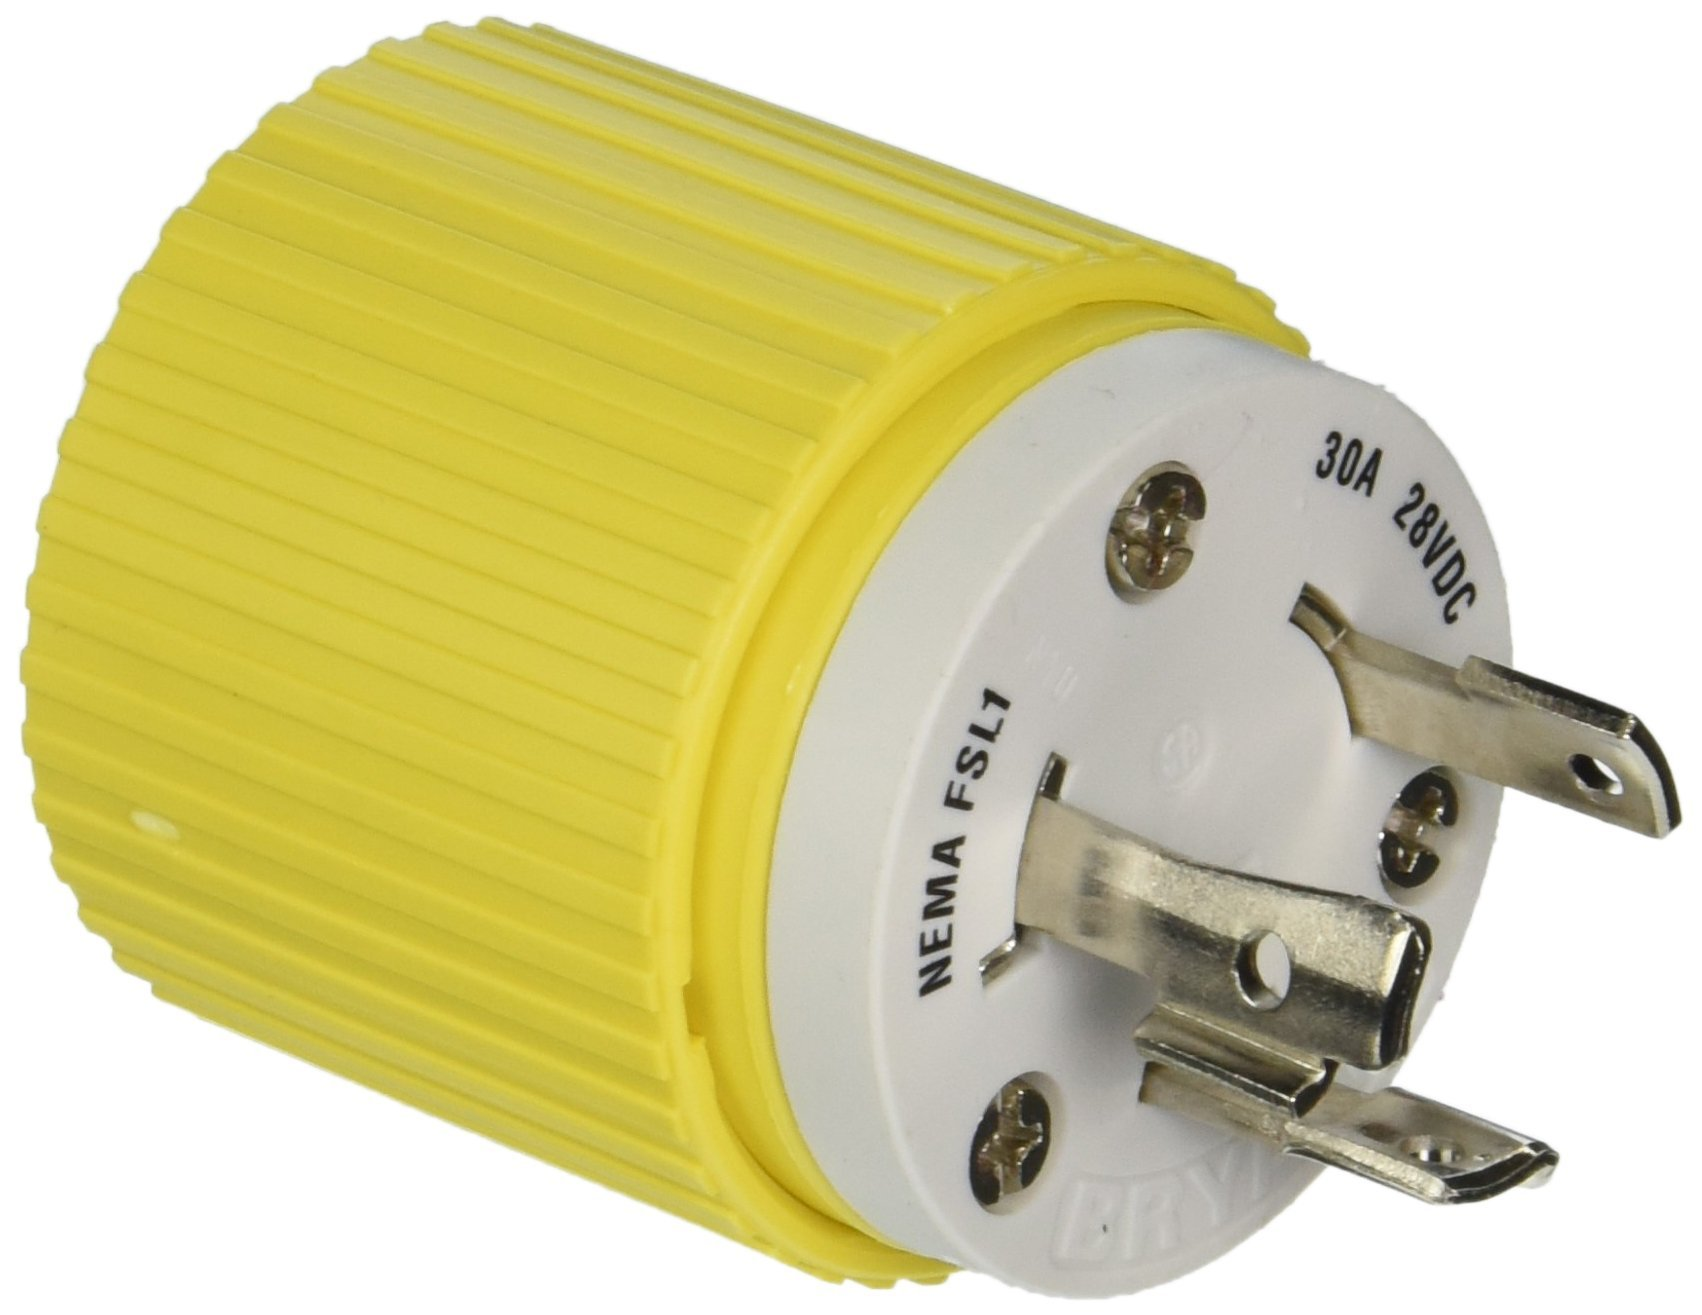 Hubbell Wiring Systems HBL328DCP Locking Plug, 30A, 28 VDC, Yellow